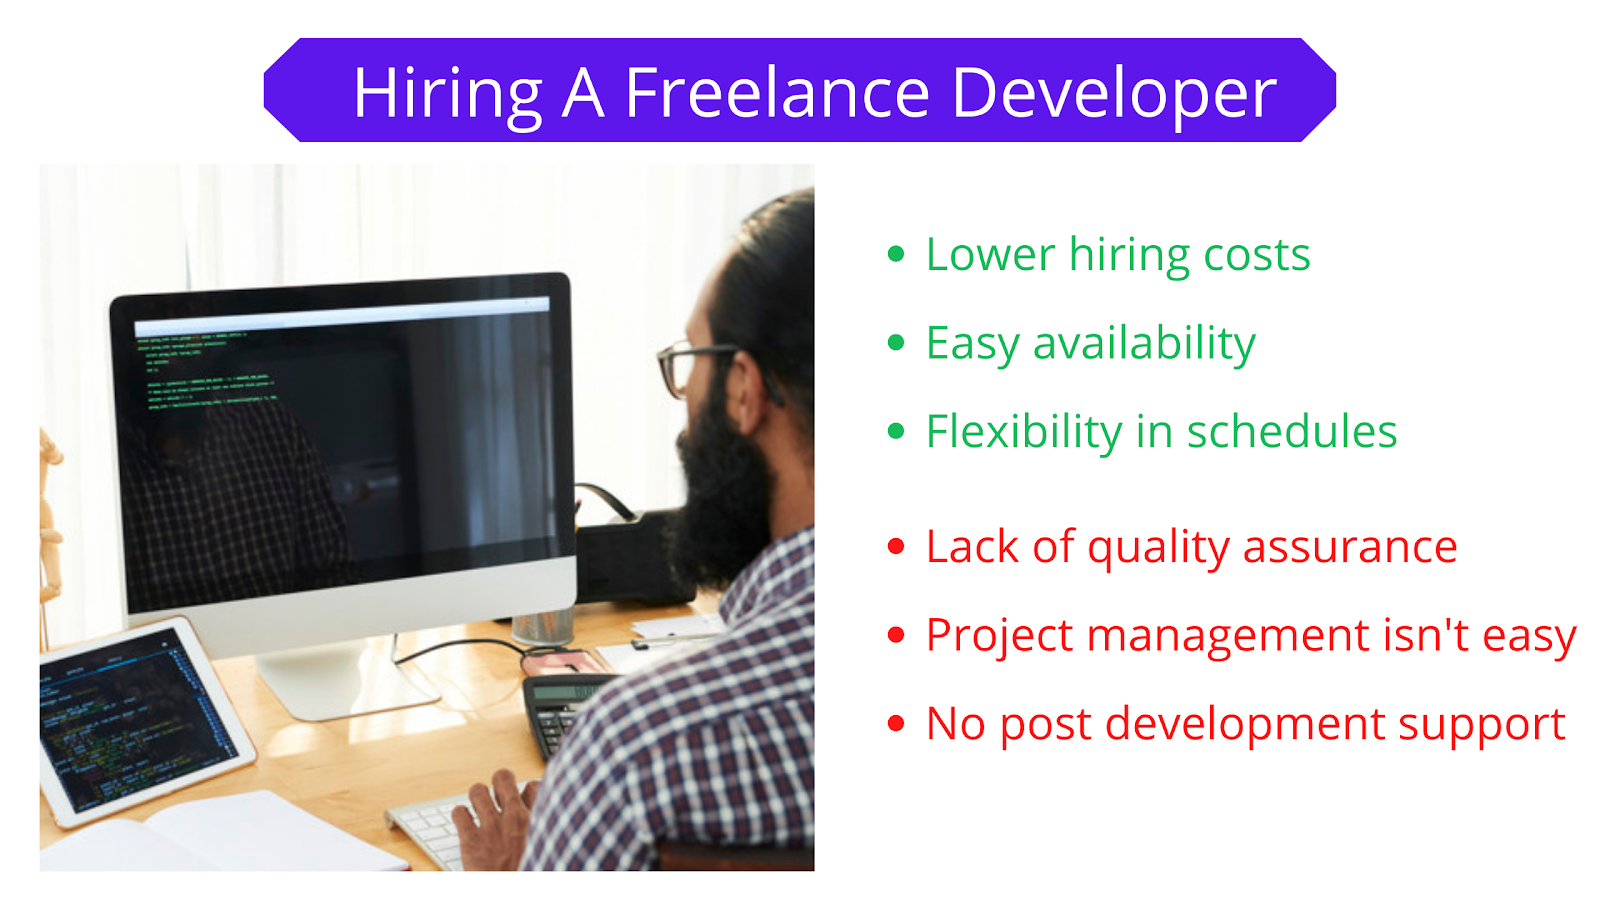 Hiring a freelance developer